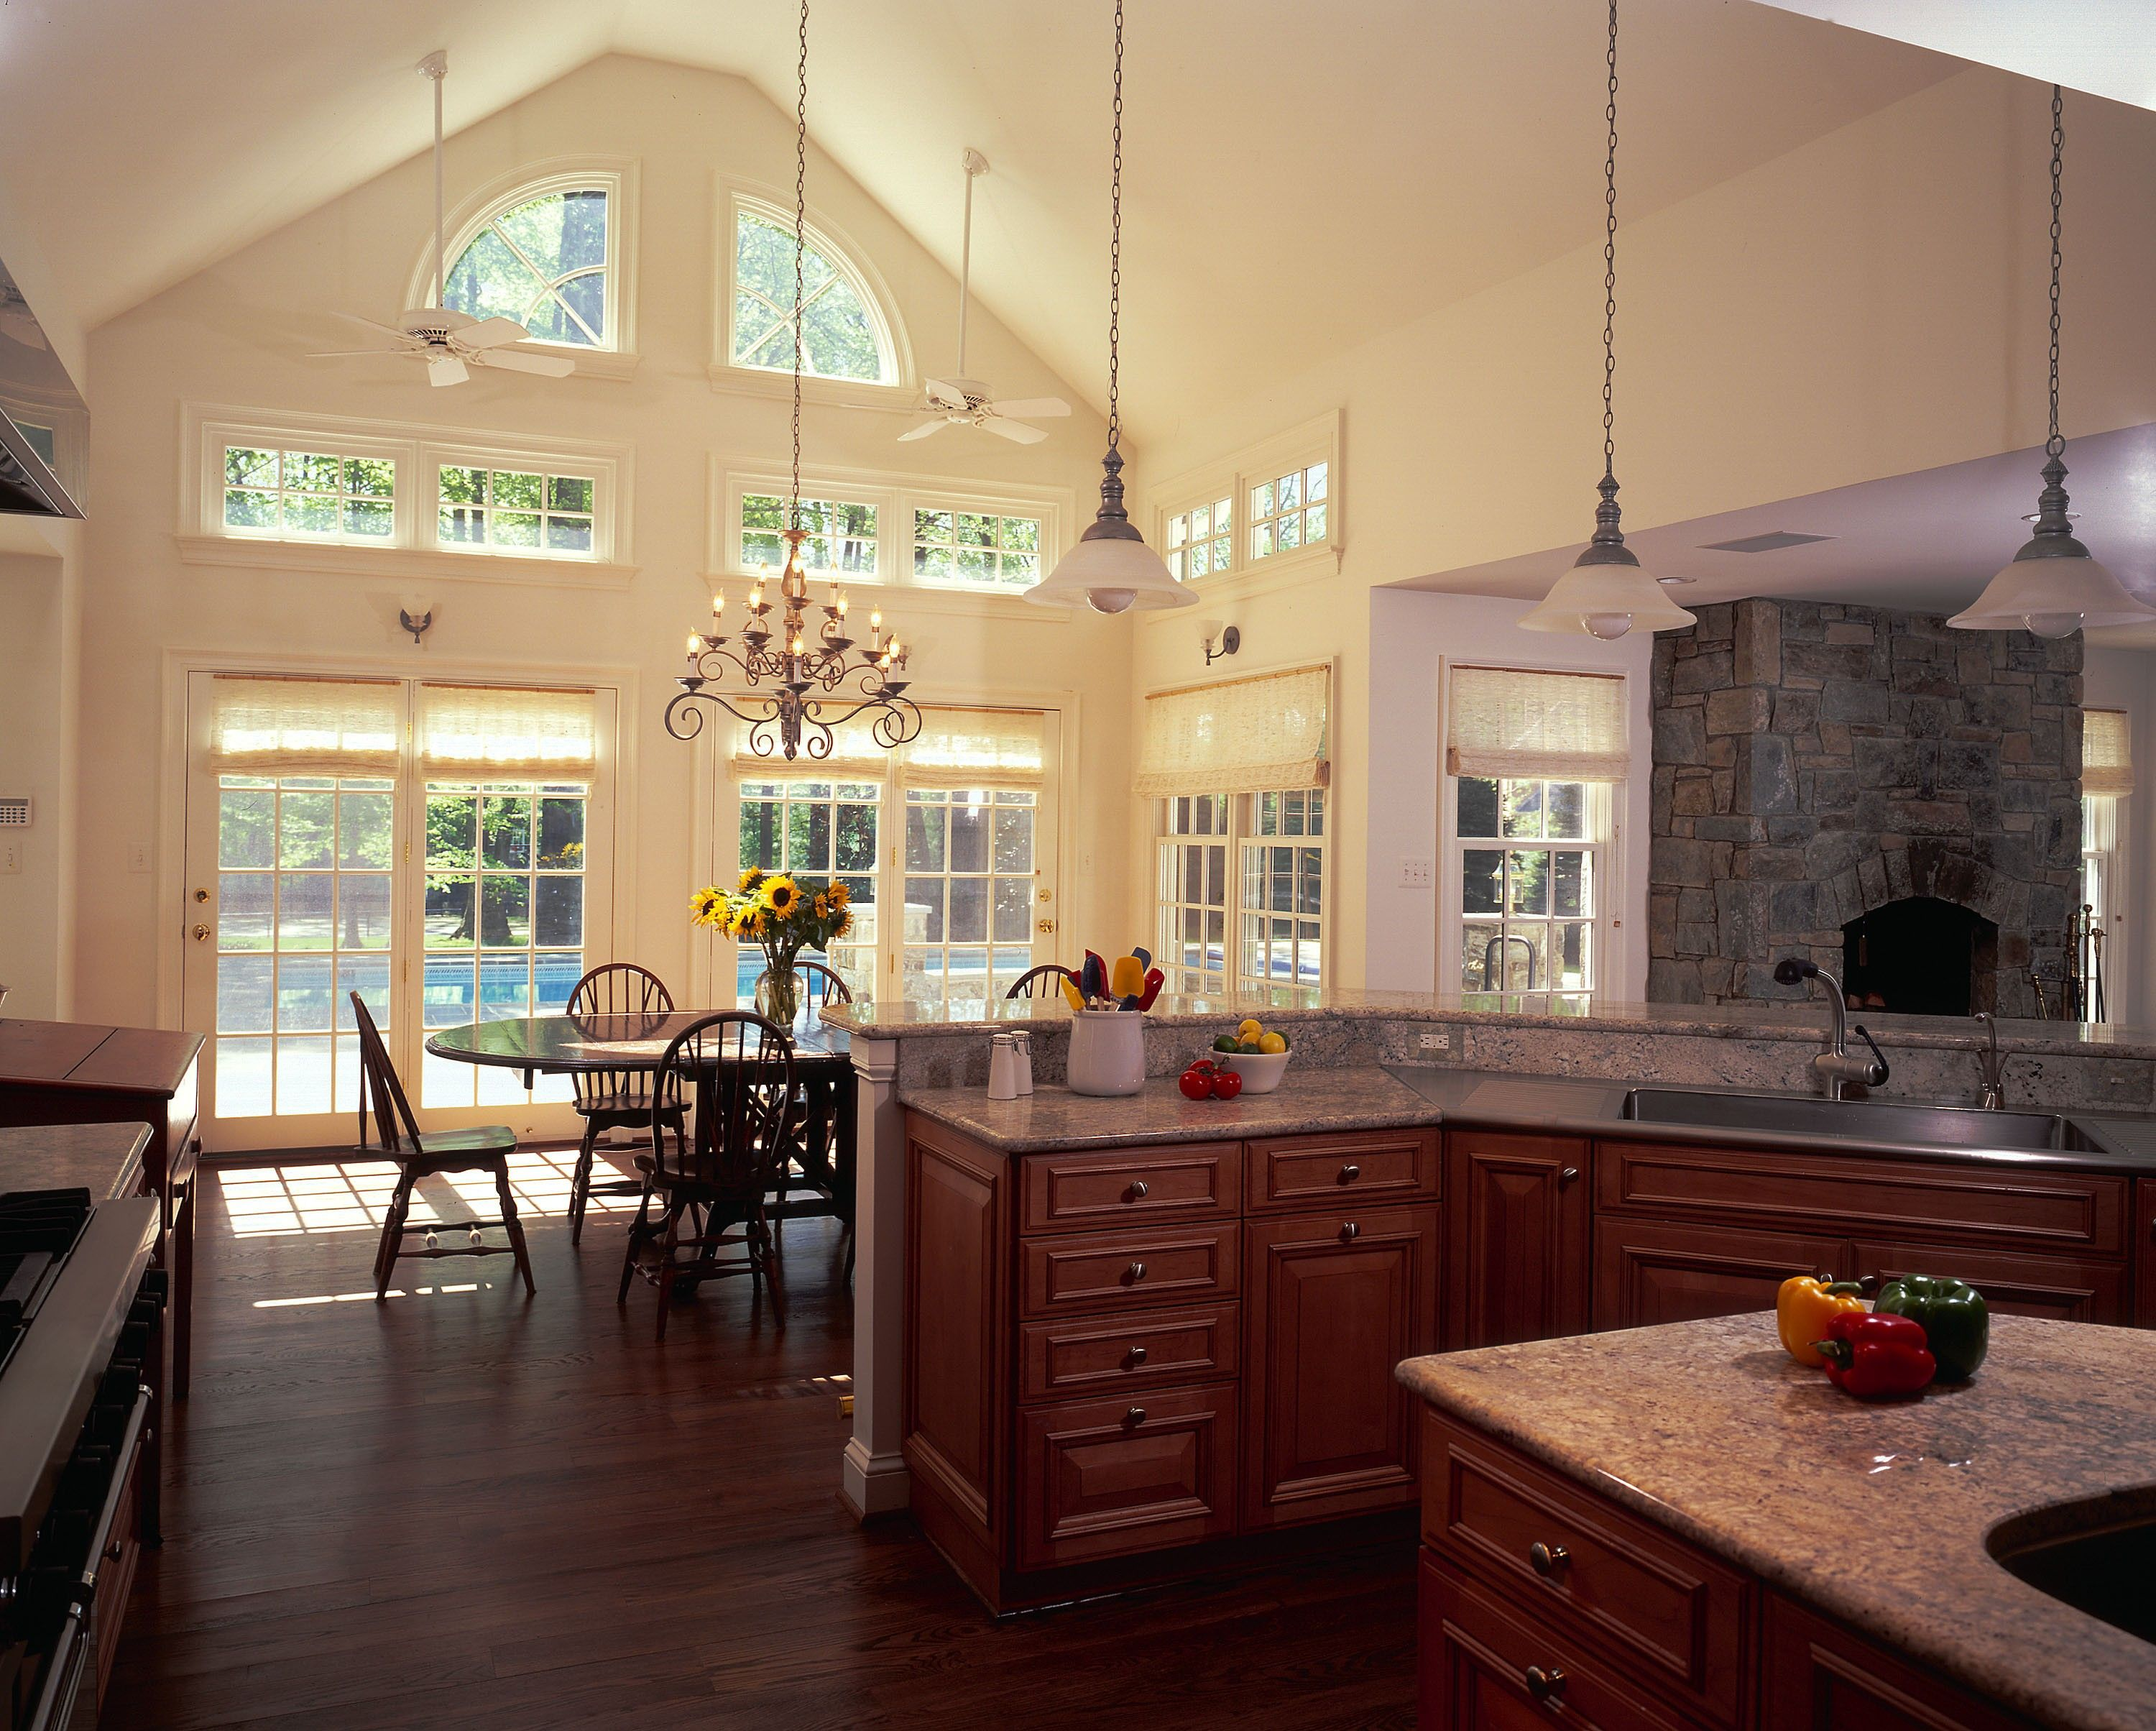 I Love The Vaulted Ceilings And Natural Sunlight Classy Kitchen